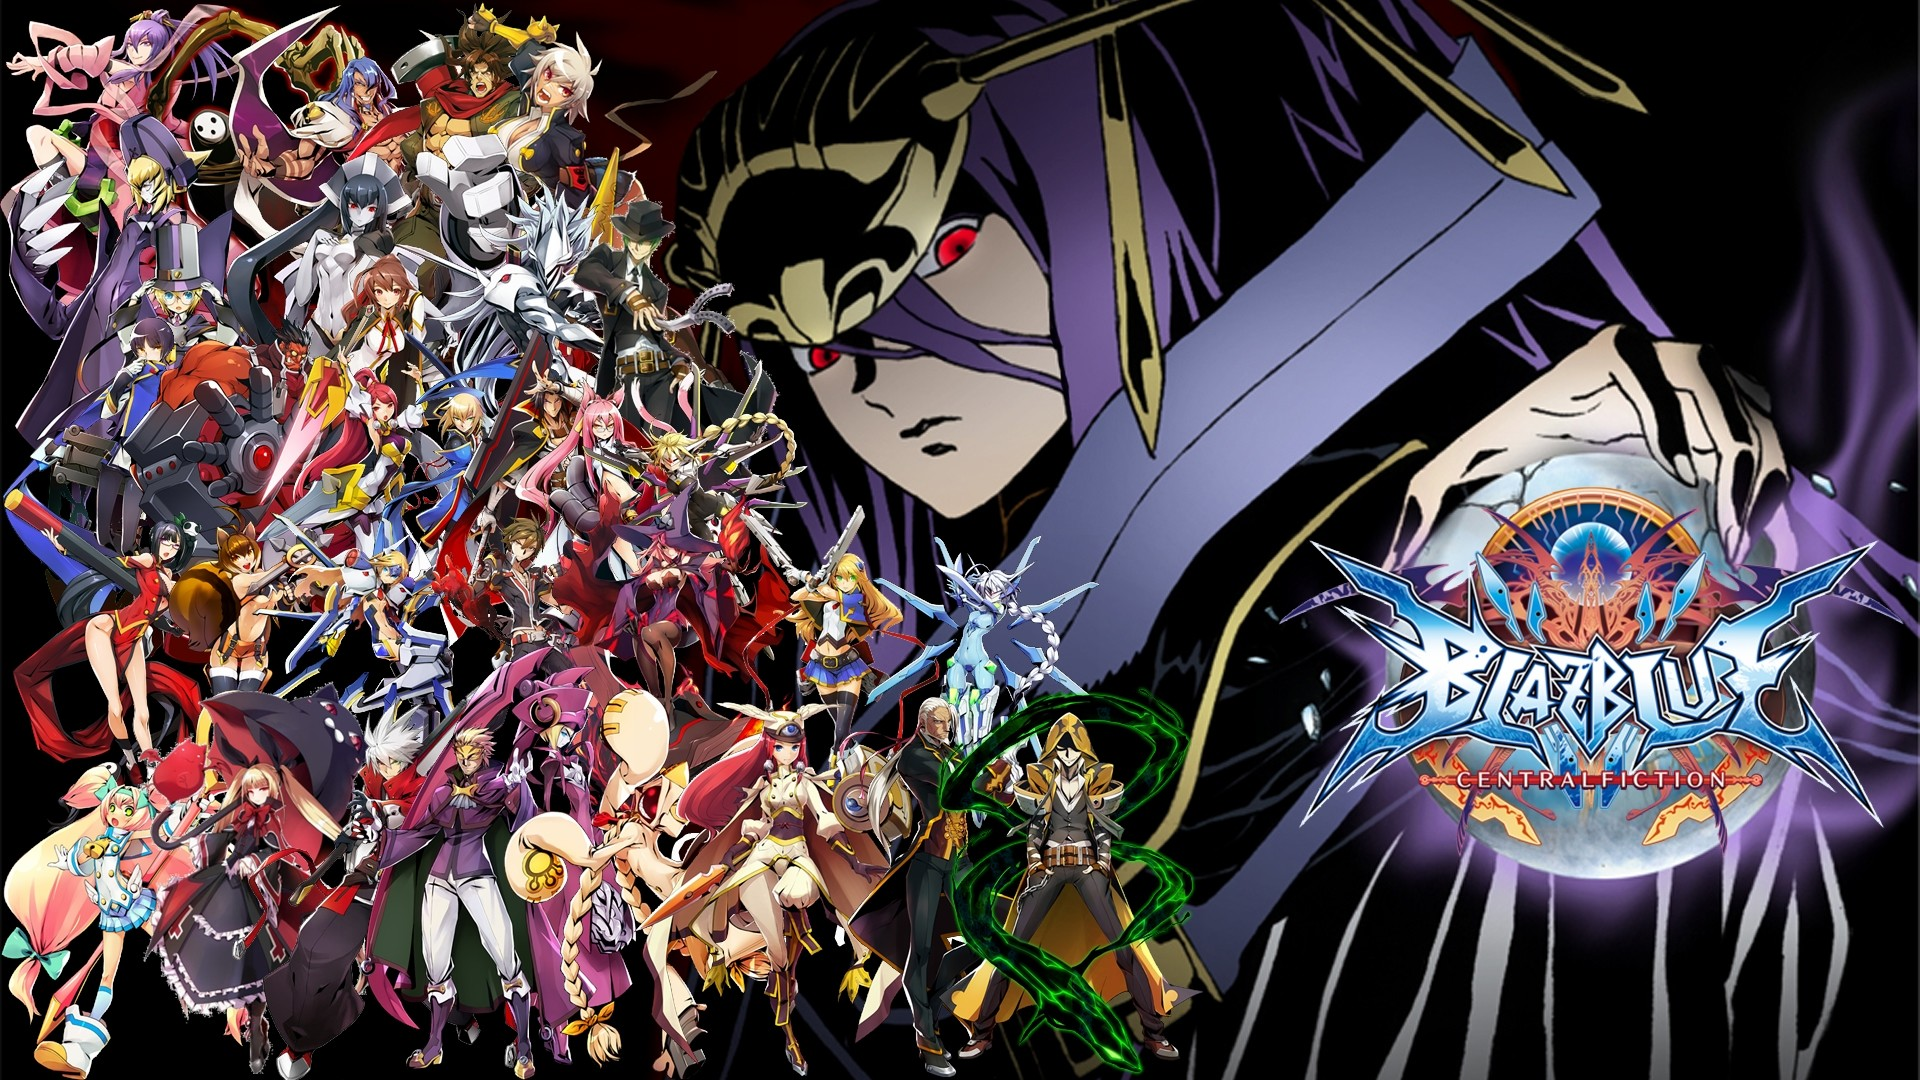 1920x1080 Video Game - BlazBlue Centralfiction Wallpaper